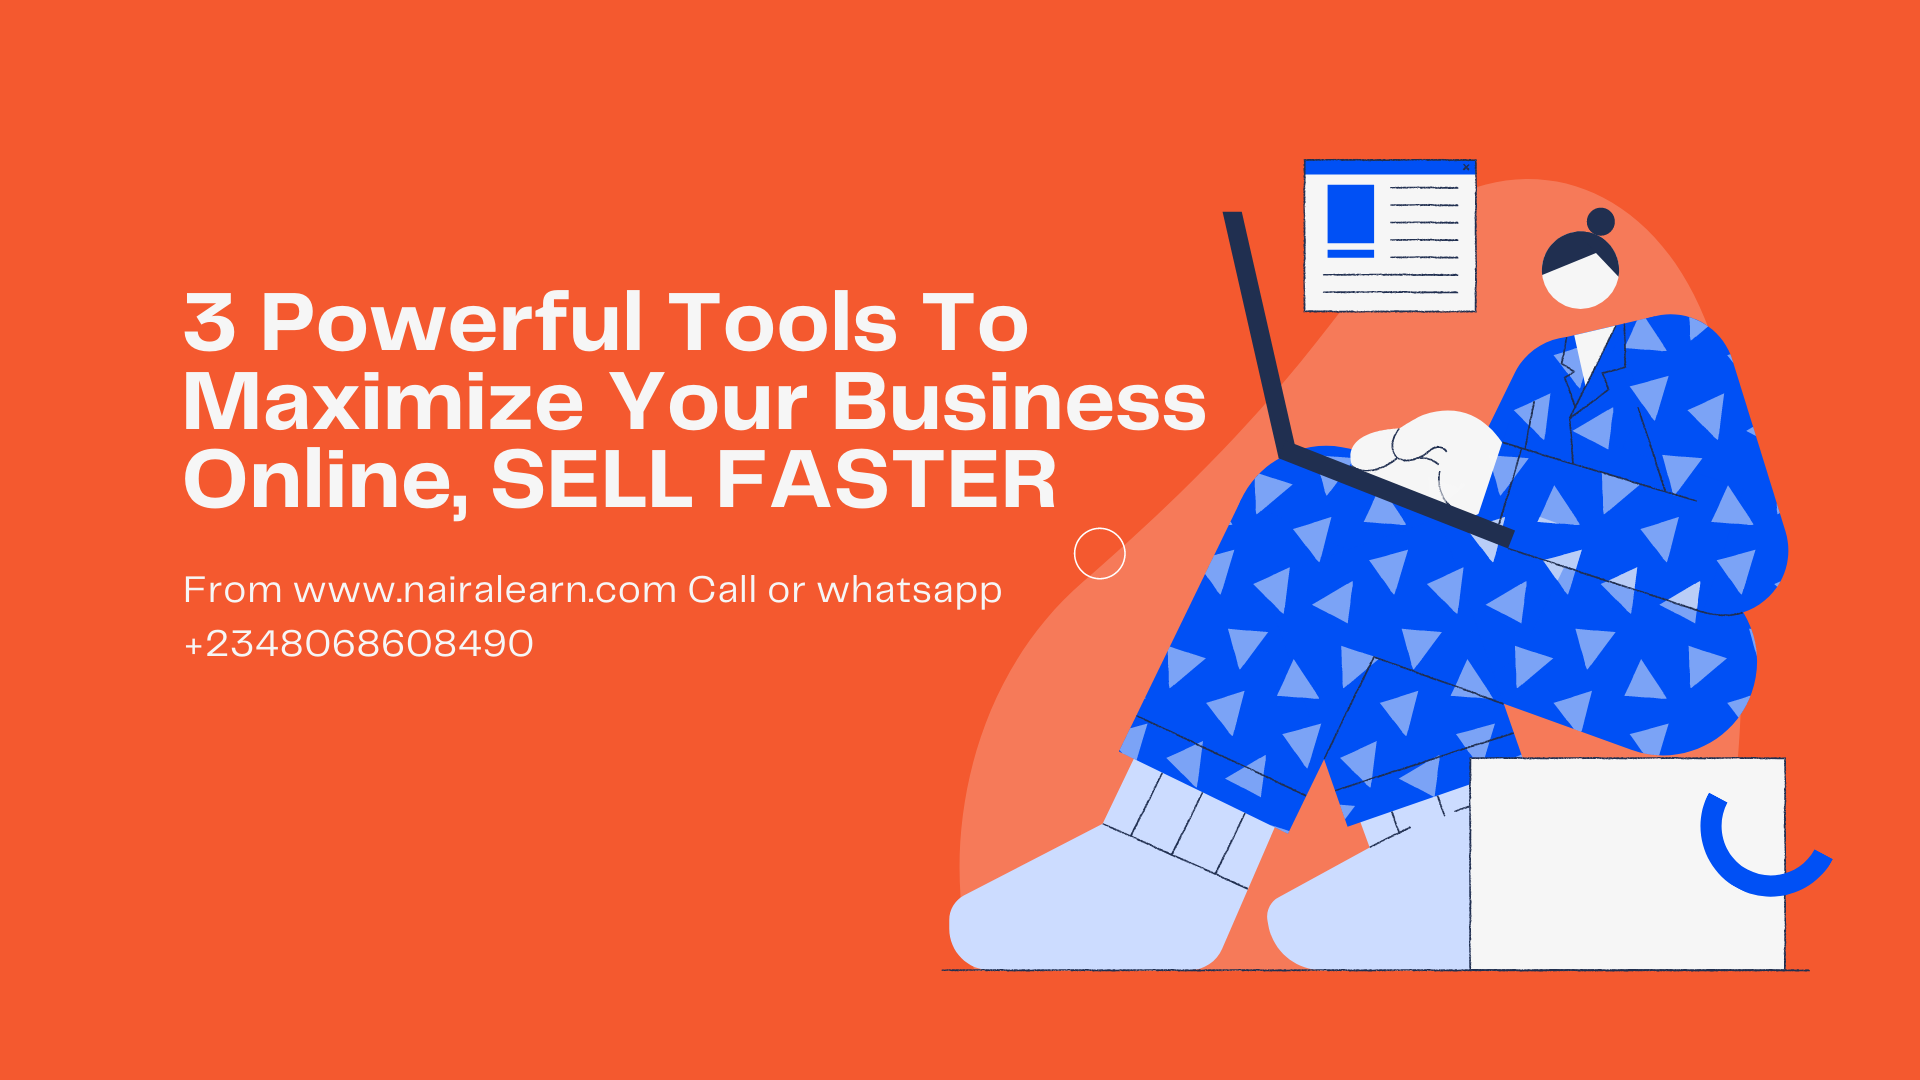 3-Powerful-Tools-To-Maximize-Your-Business-Online-SELL-FASTER